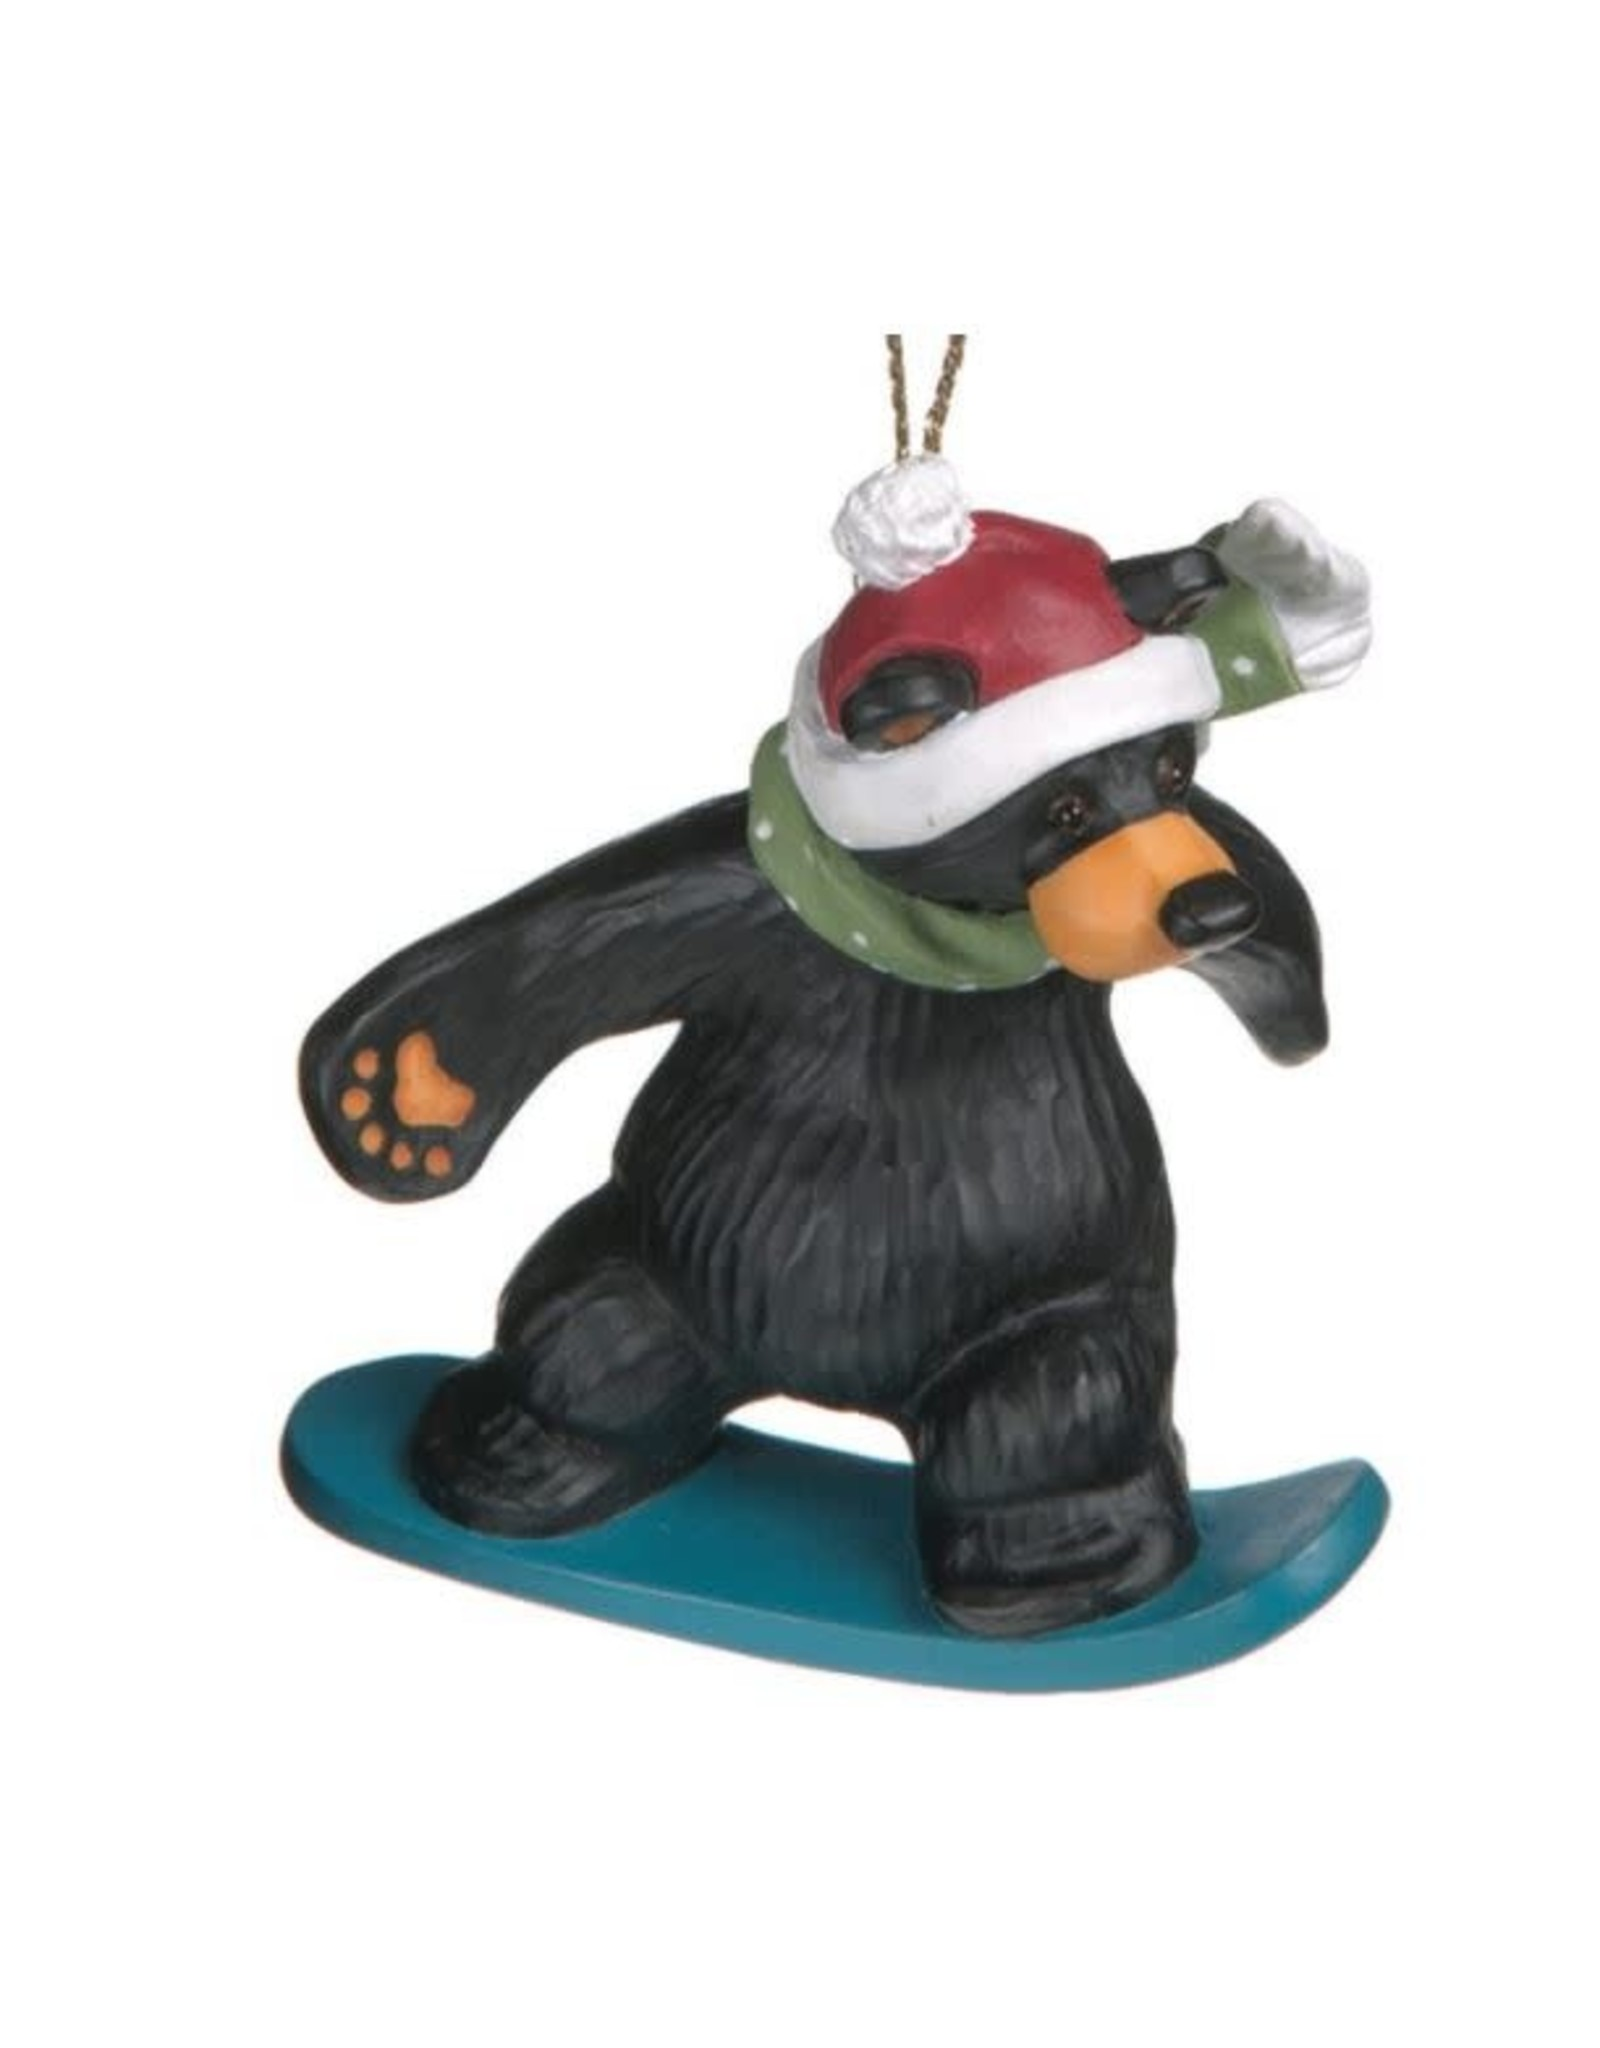 Demdaco BEAR SNOWBOARDER ORNAMENT